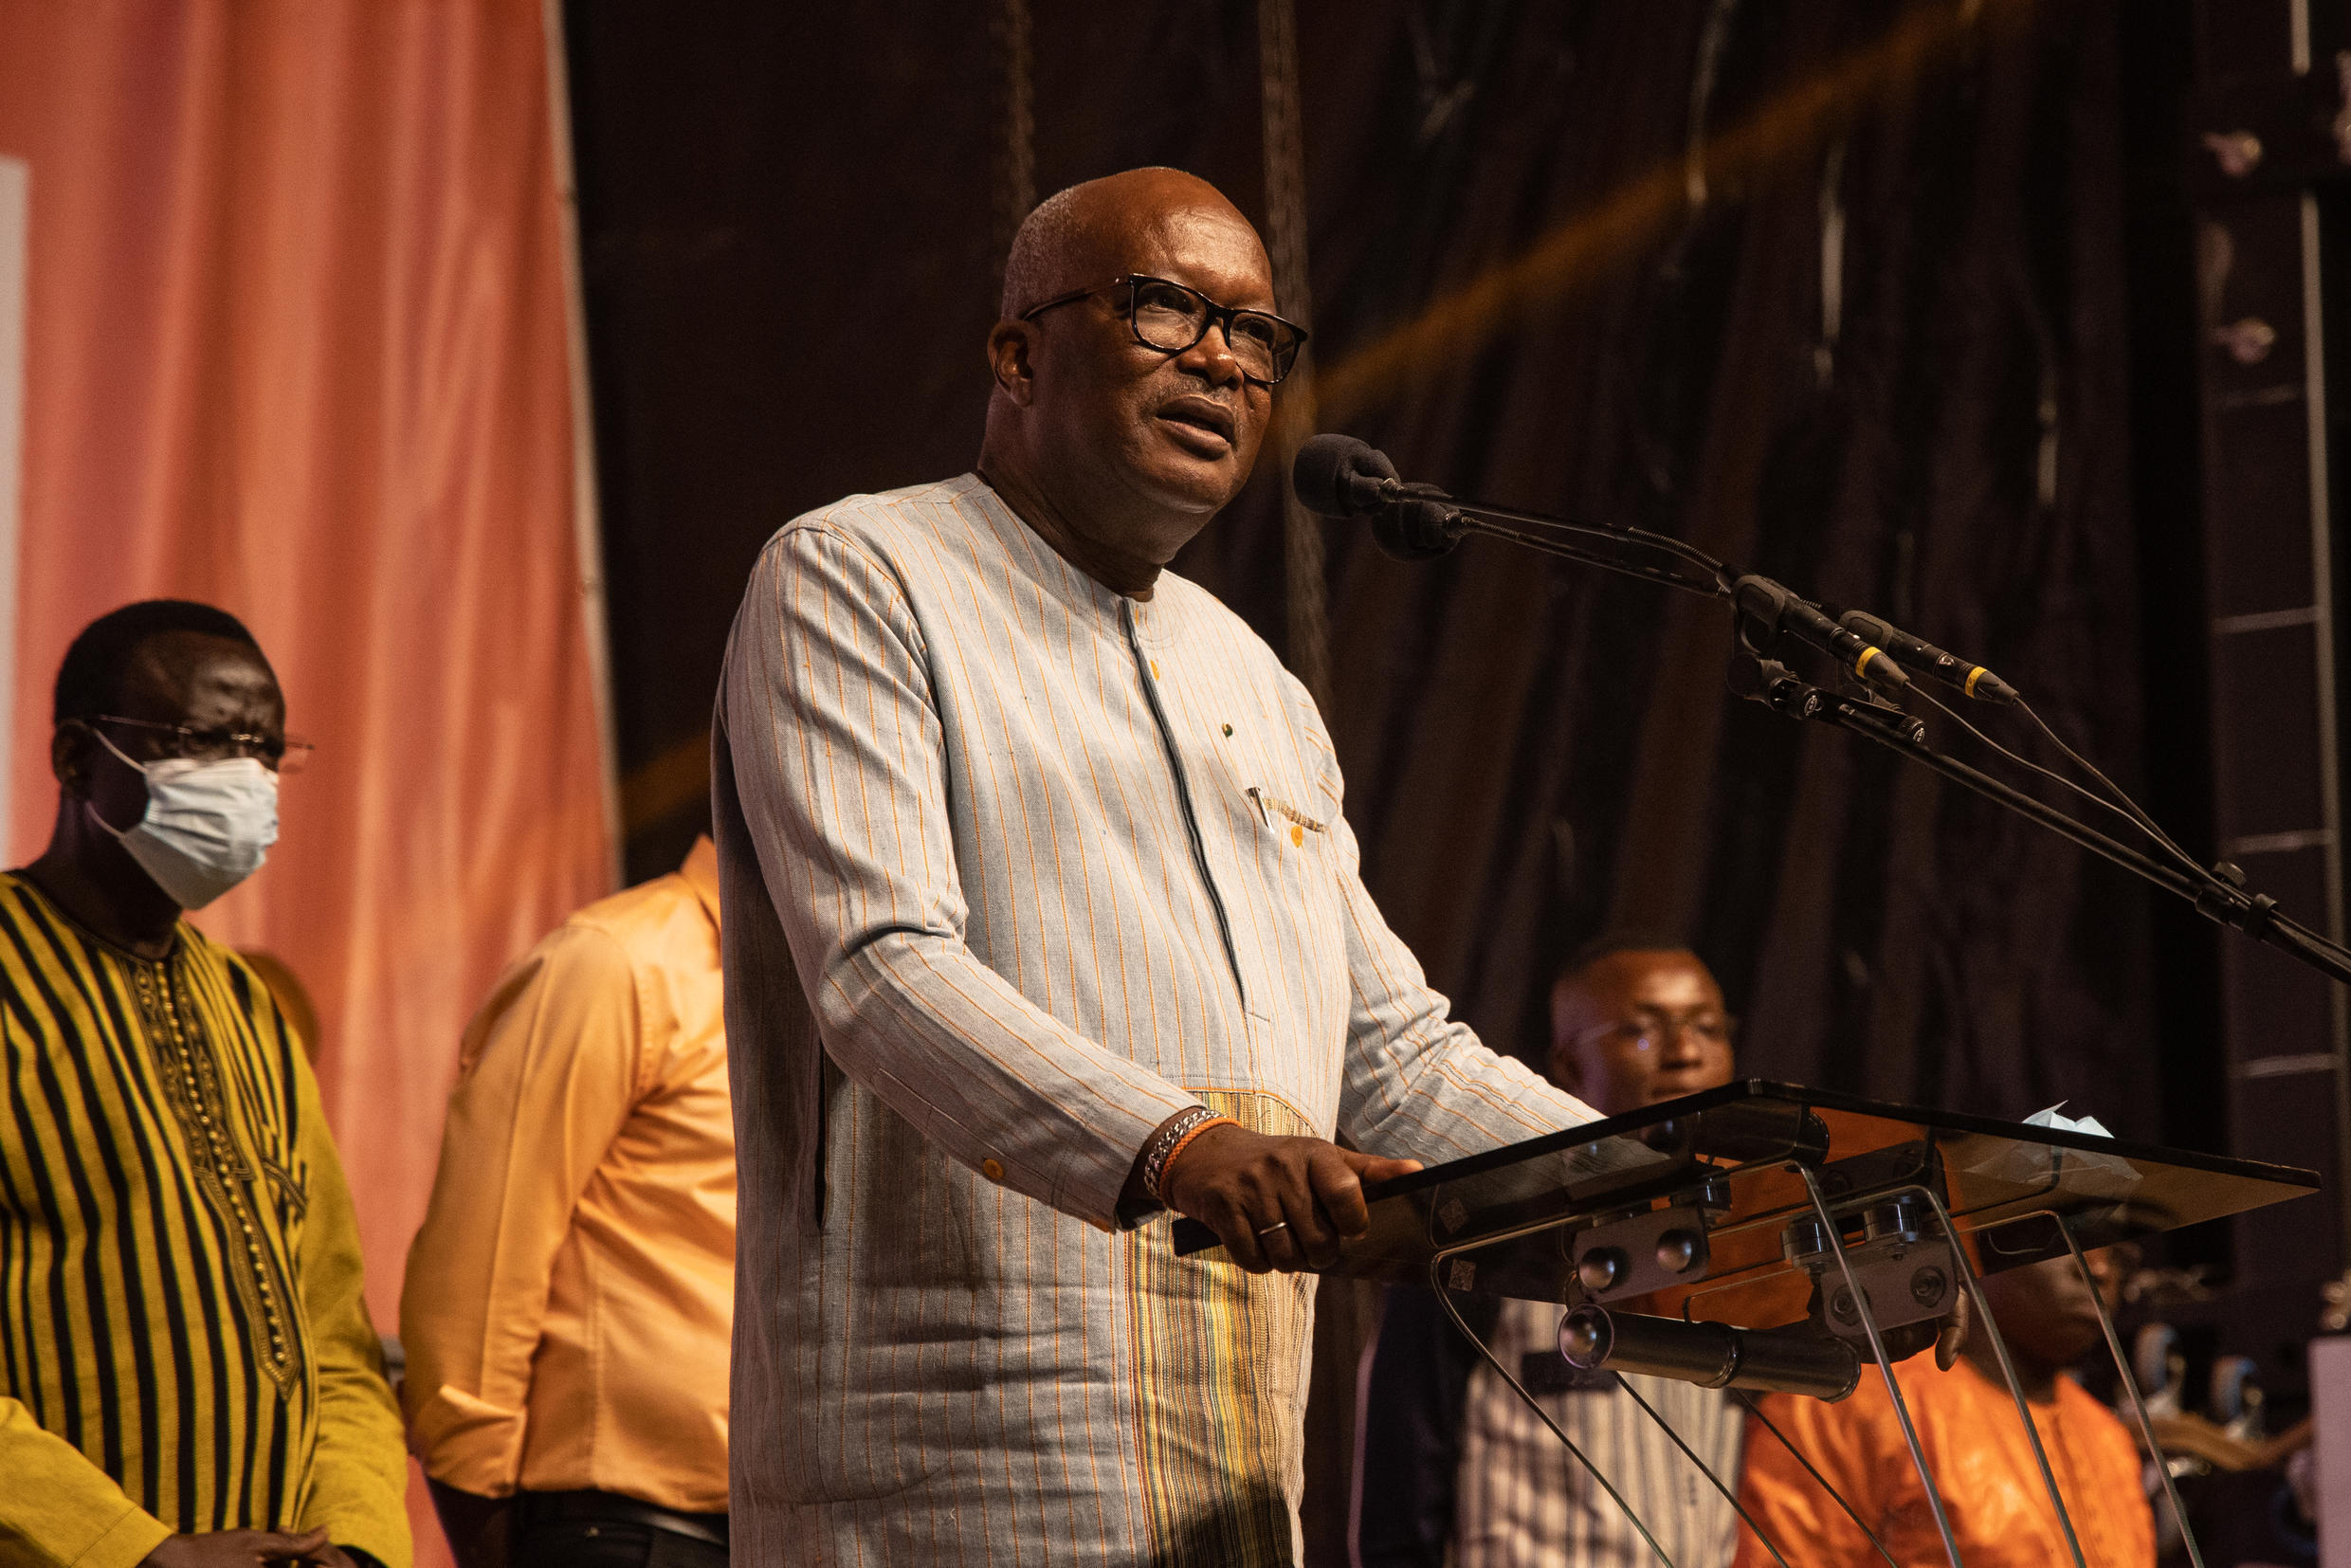 Roch Marc Christian Kabore won an outright majority in the first round of the presidential election, removing the need for a runoff